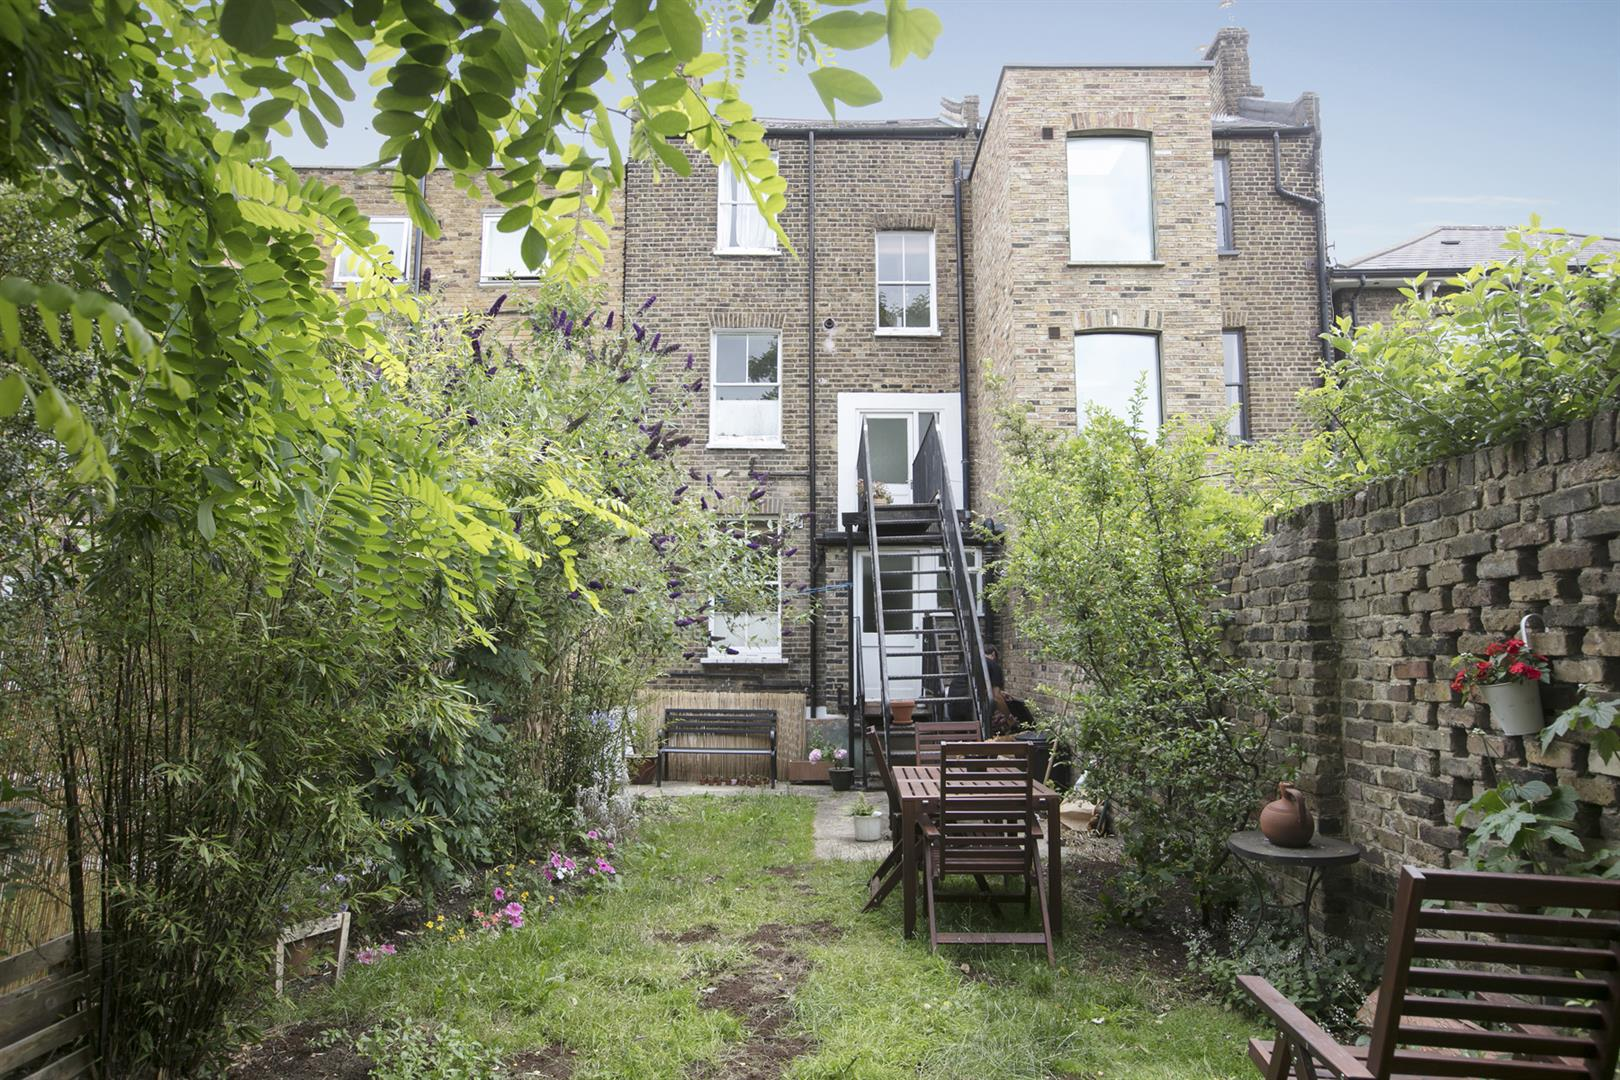 Flat - Conversion Sale Agreed in Talfourd Road, London 643 view4